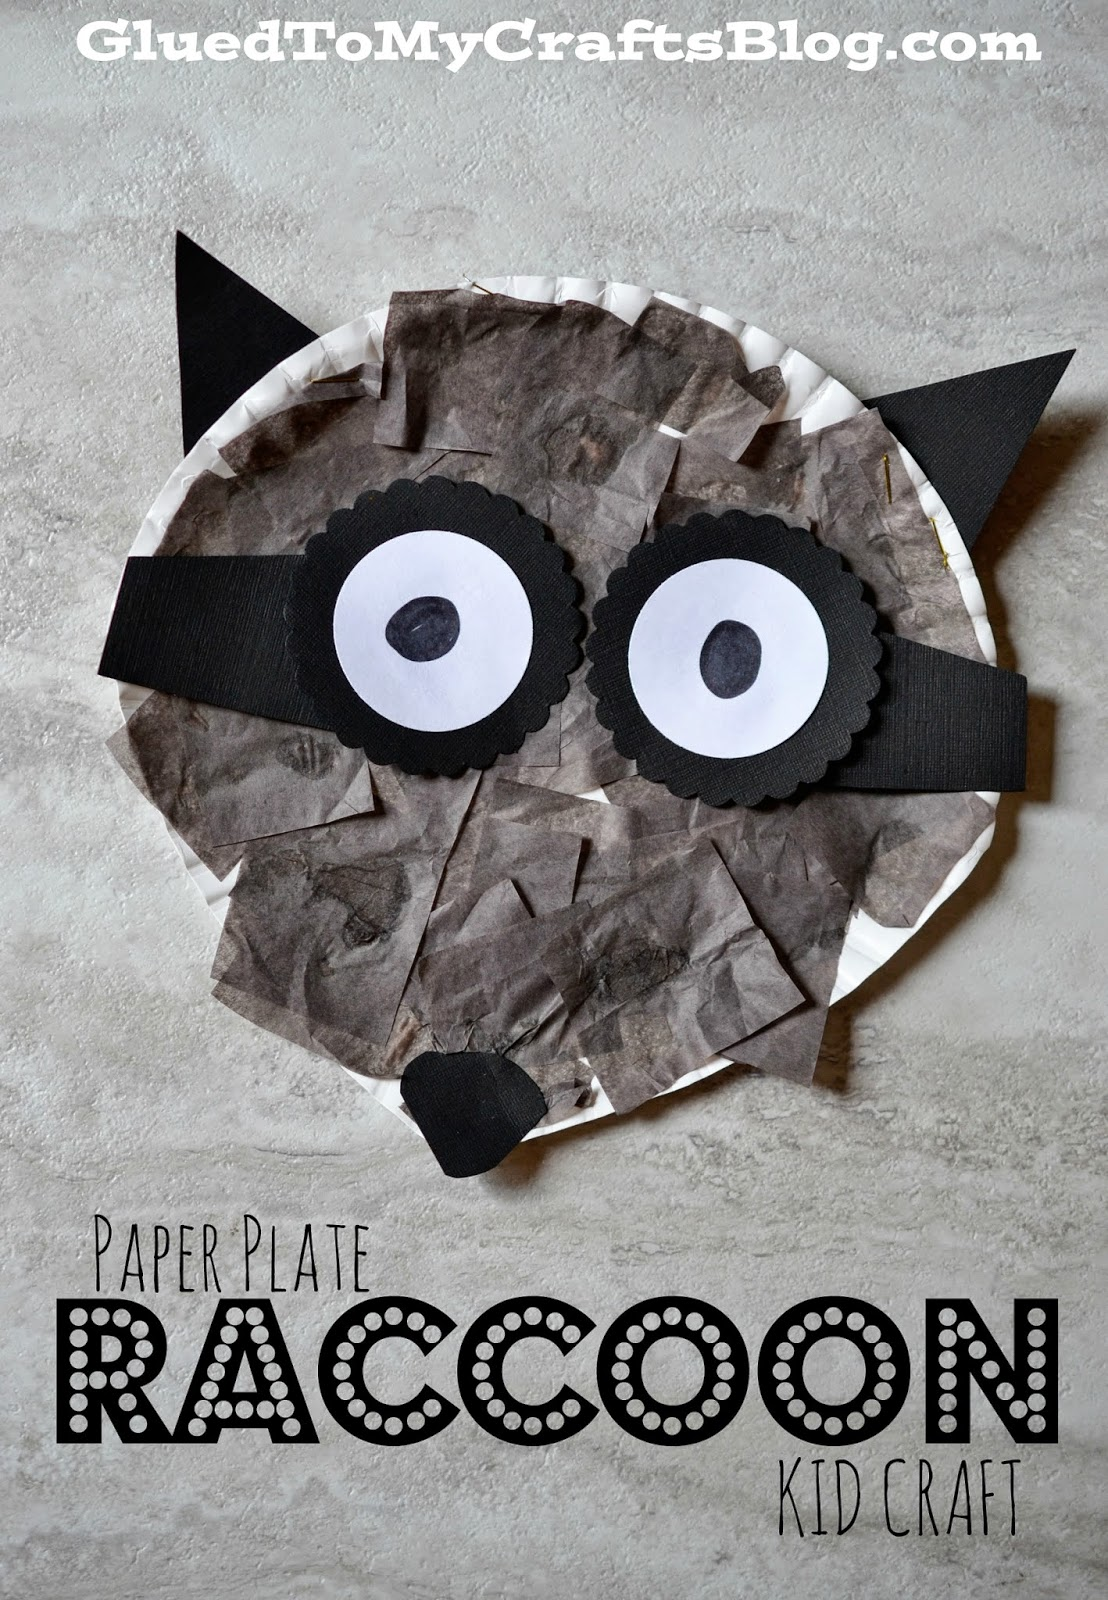 Paper Plate Raccoon Kid Craft